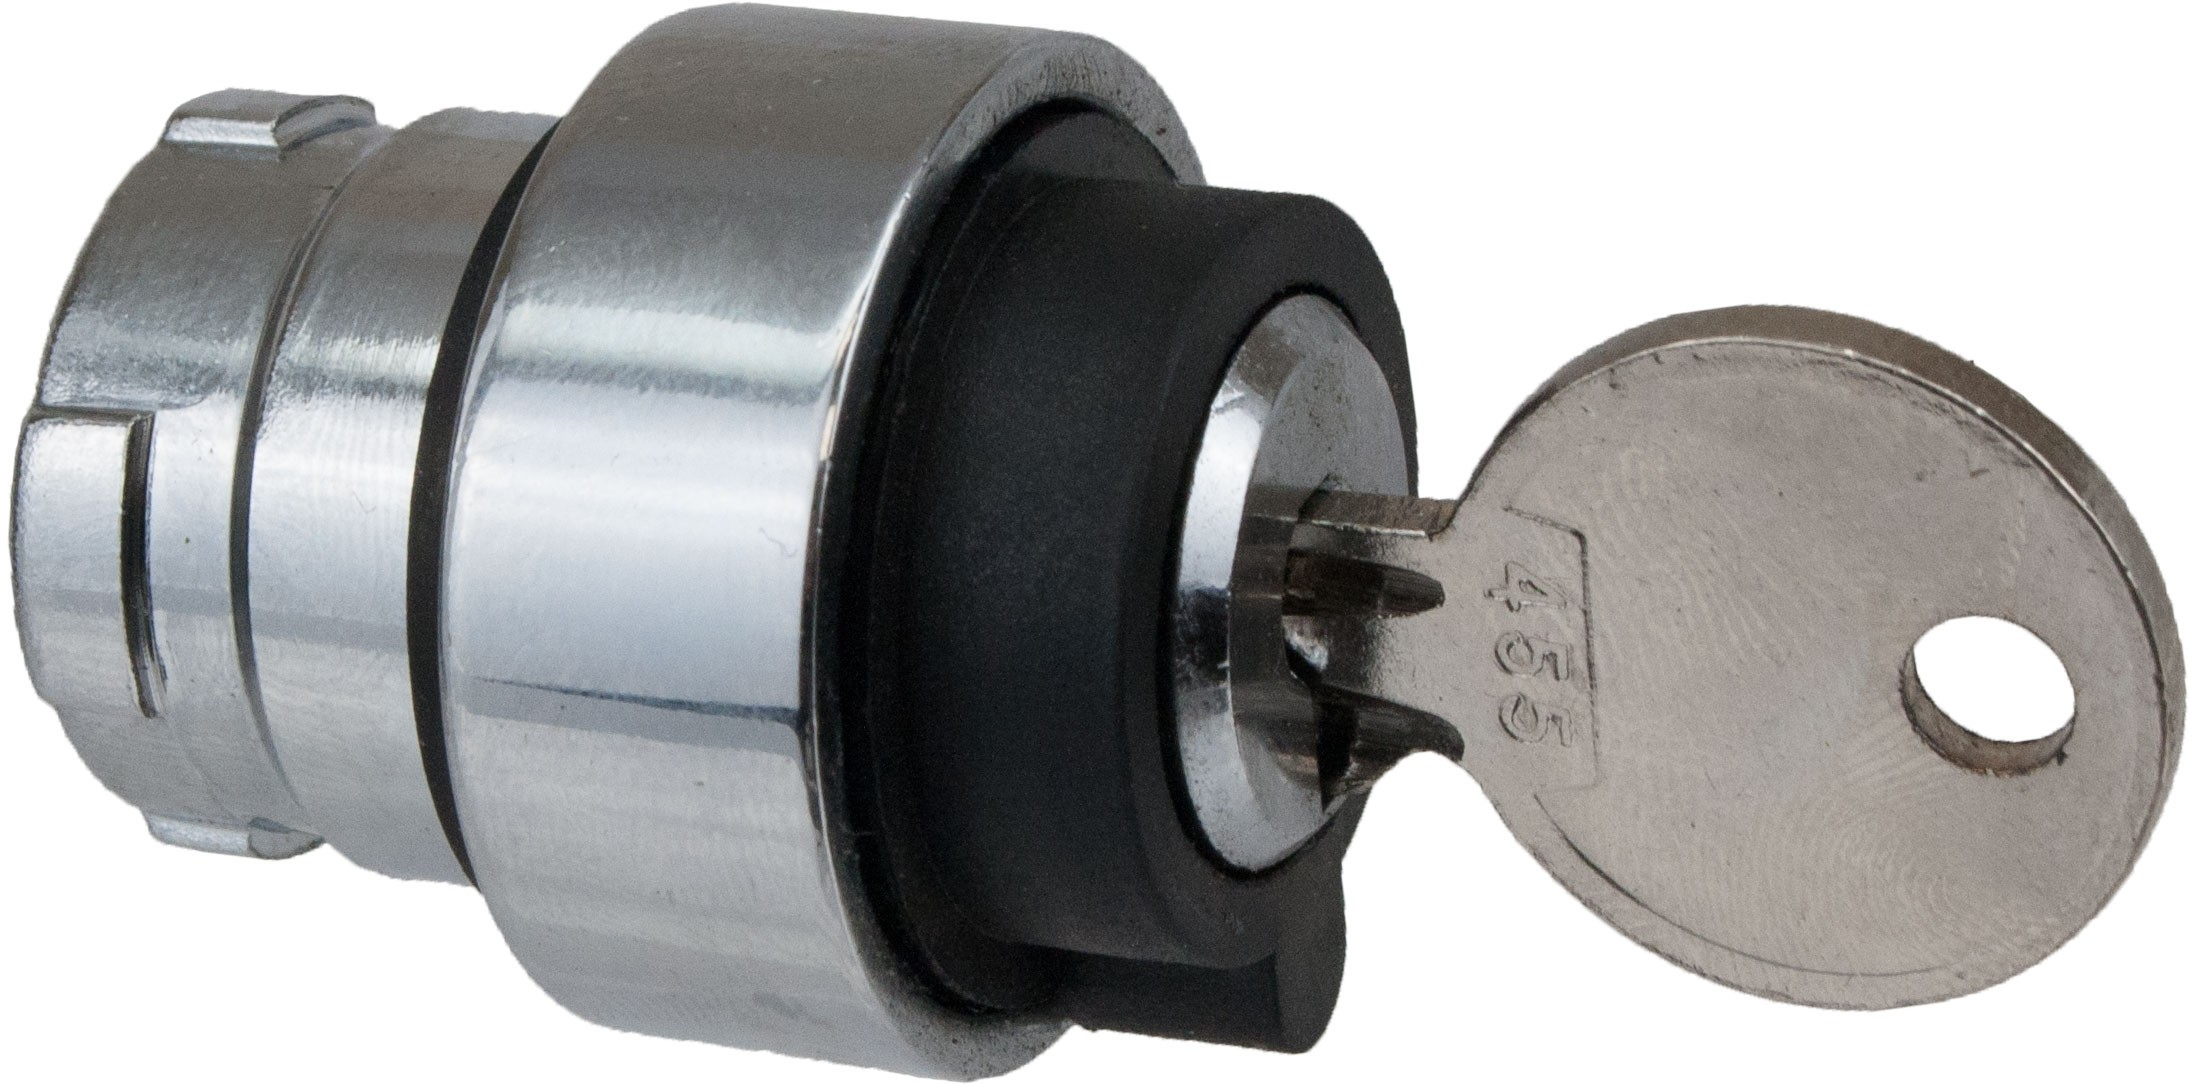 3 Position Key Selector Switch Spring Return Pb Bg7 Elecdirect Pollak Lightduty Toggle Onoff 12 Volt 10 Amp 6quot Wire